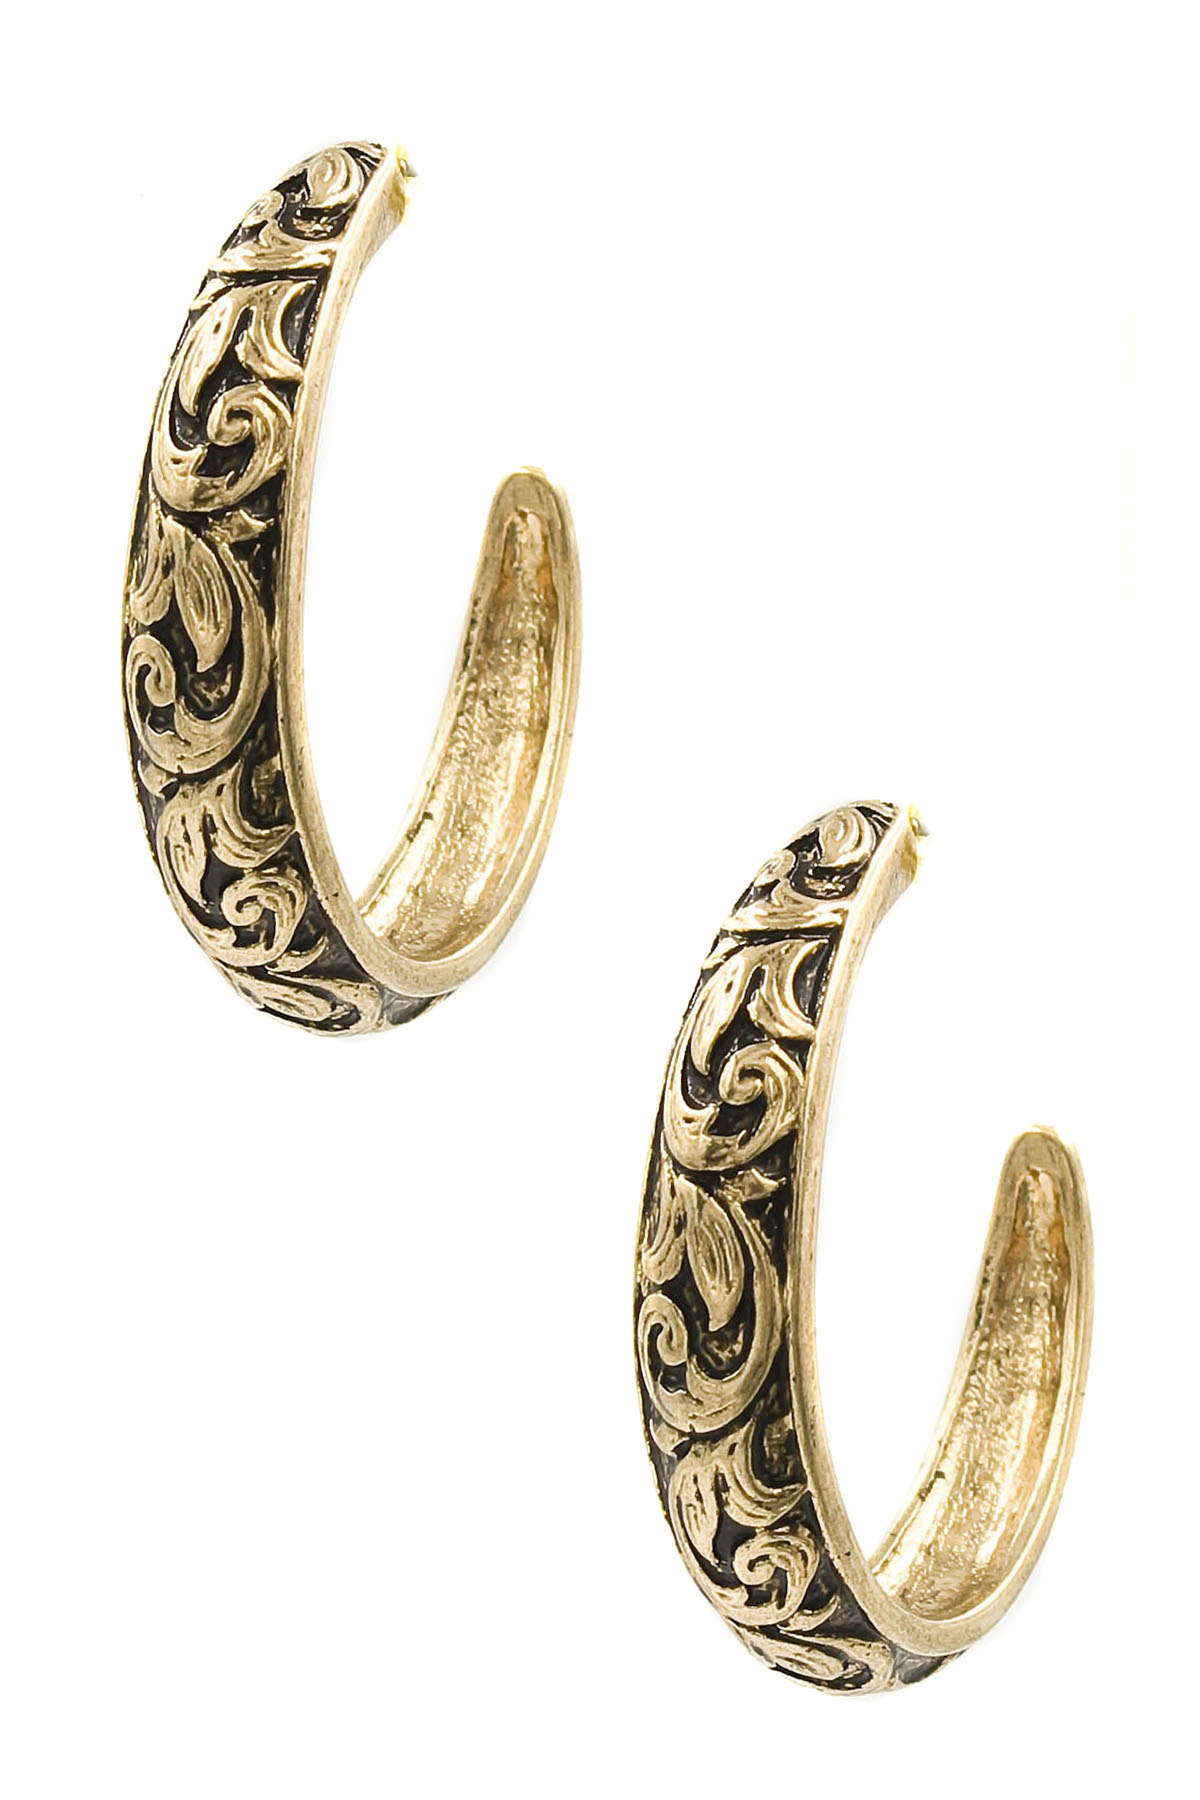 Free shipping and returns on women's hoop earrings at allshop-eqe0tr01.cf Find a great selection of hoops from Tory Burch, Judith Jack, Vince Camuto and more.